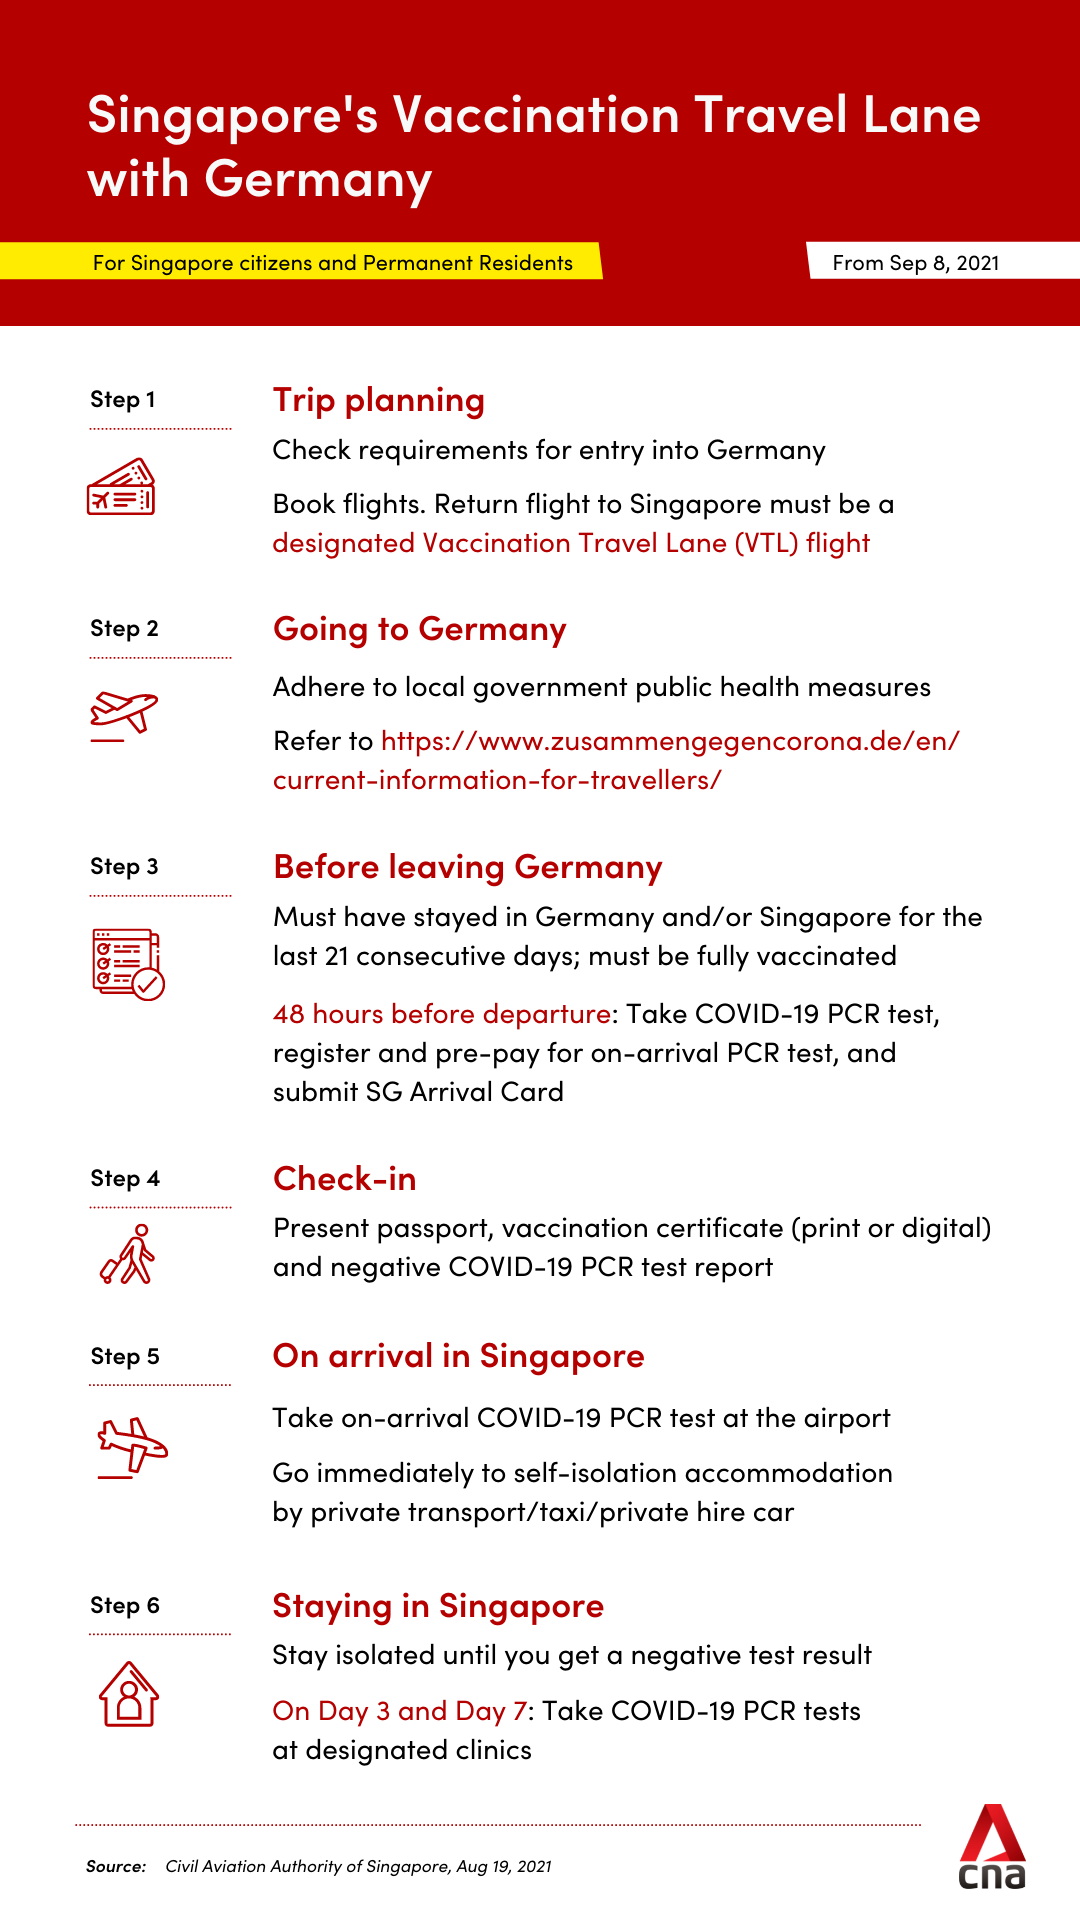 singapore vtl with germany - singapore citizens, permanent residents